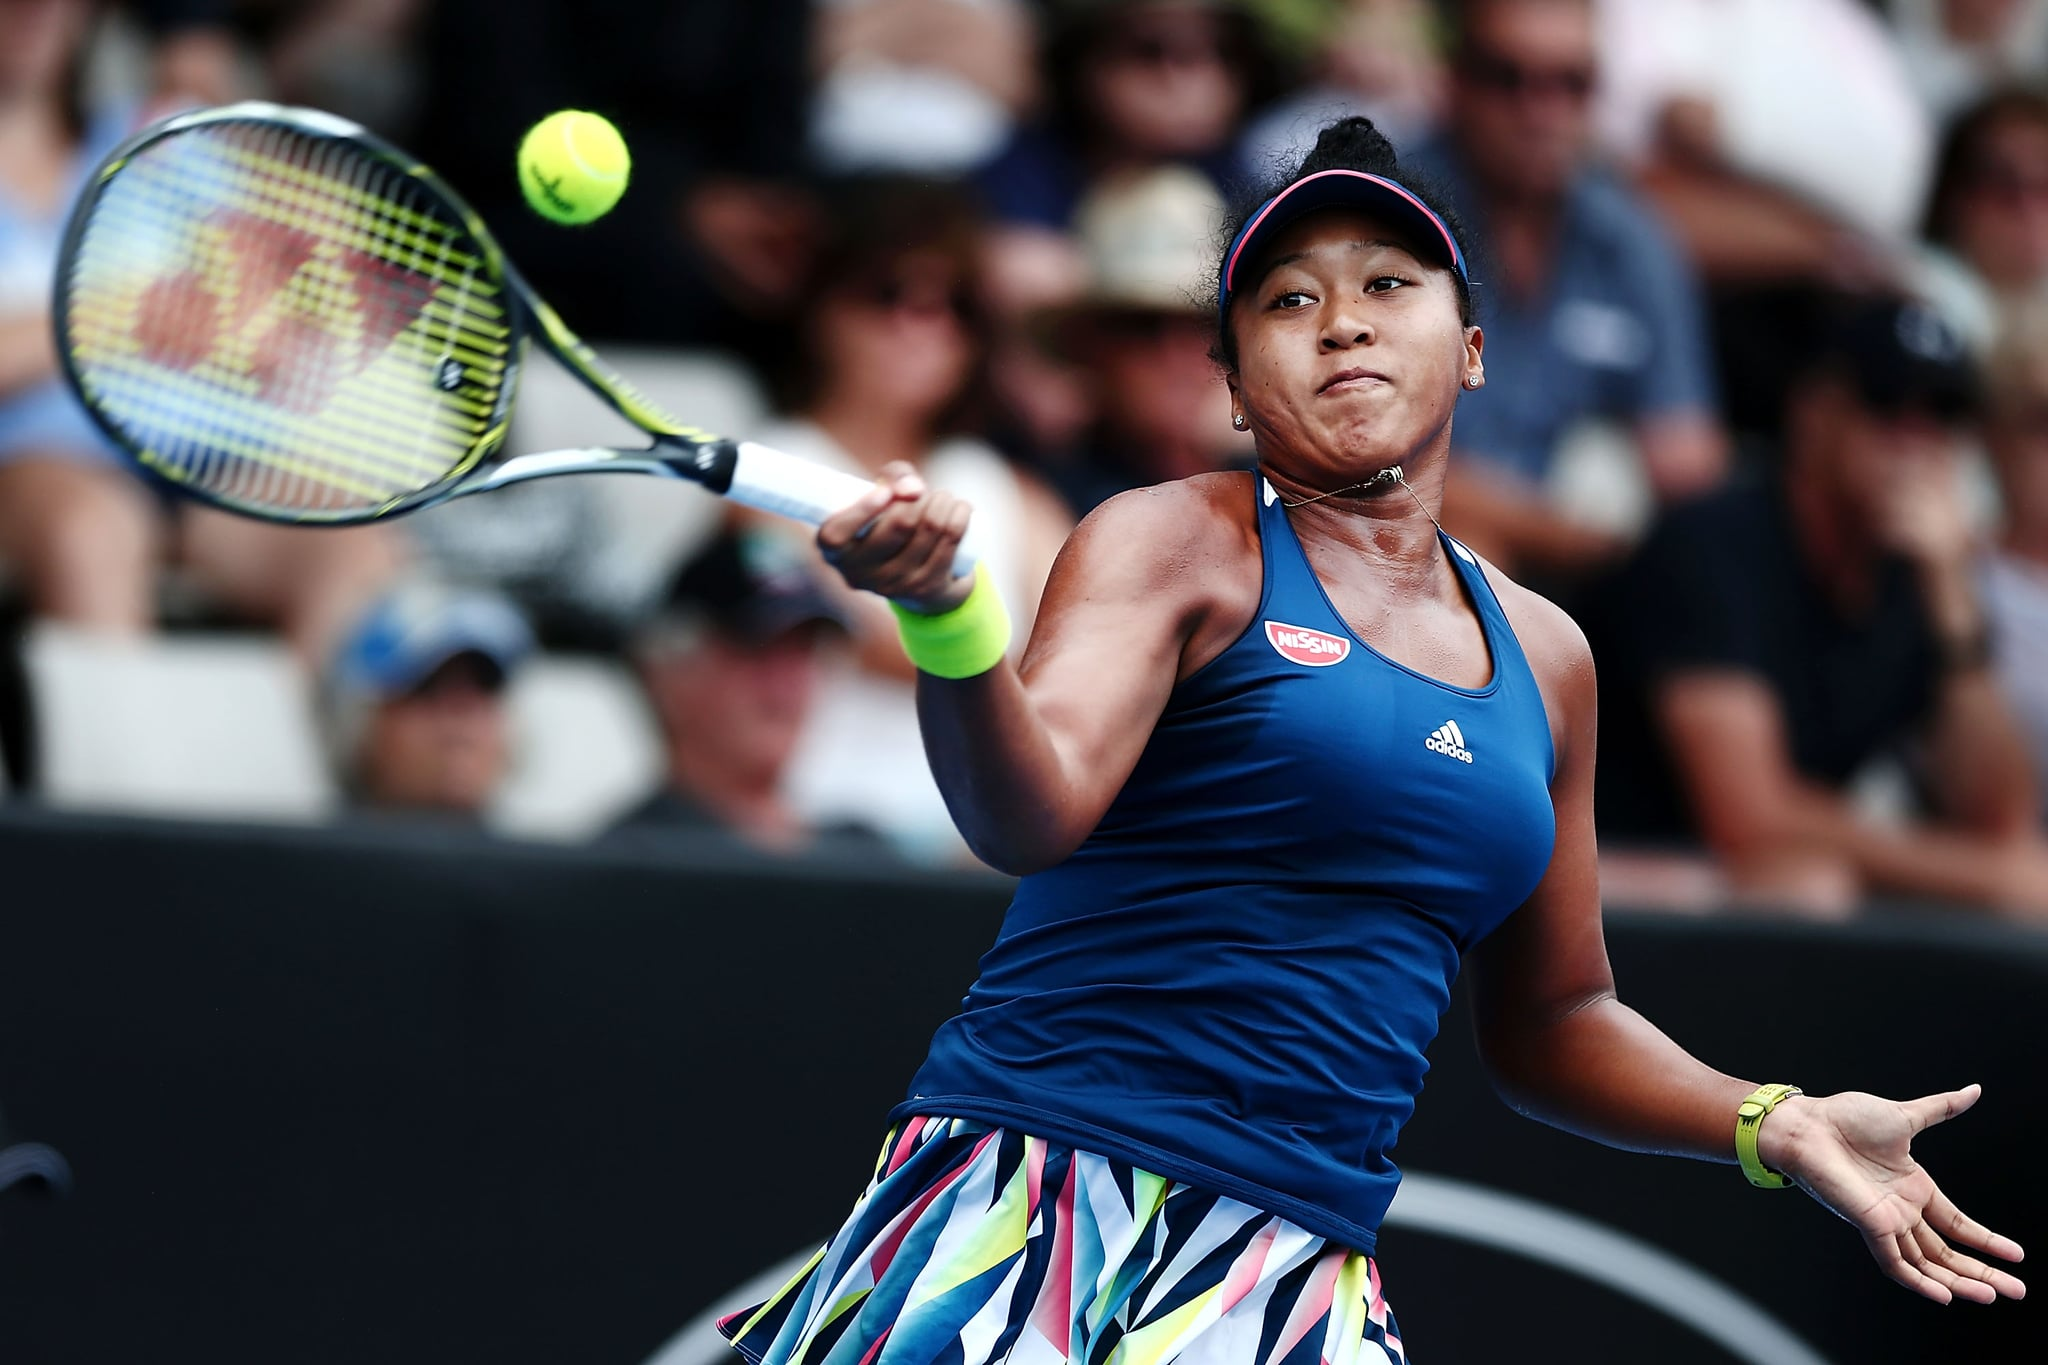 AUCKLAND, NEW ZEALAND - JANUARY 02:  Naomi Osaka of Japan plays a forehand in her match against Annika Beck of Germany on day one of the ASB Classic on January 2, 2017 in Auckland, New Zealand.  (Photo by Anthony Au-Yeung/Getty Images)